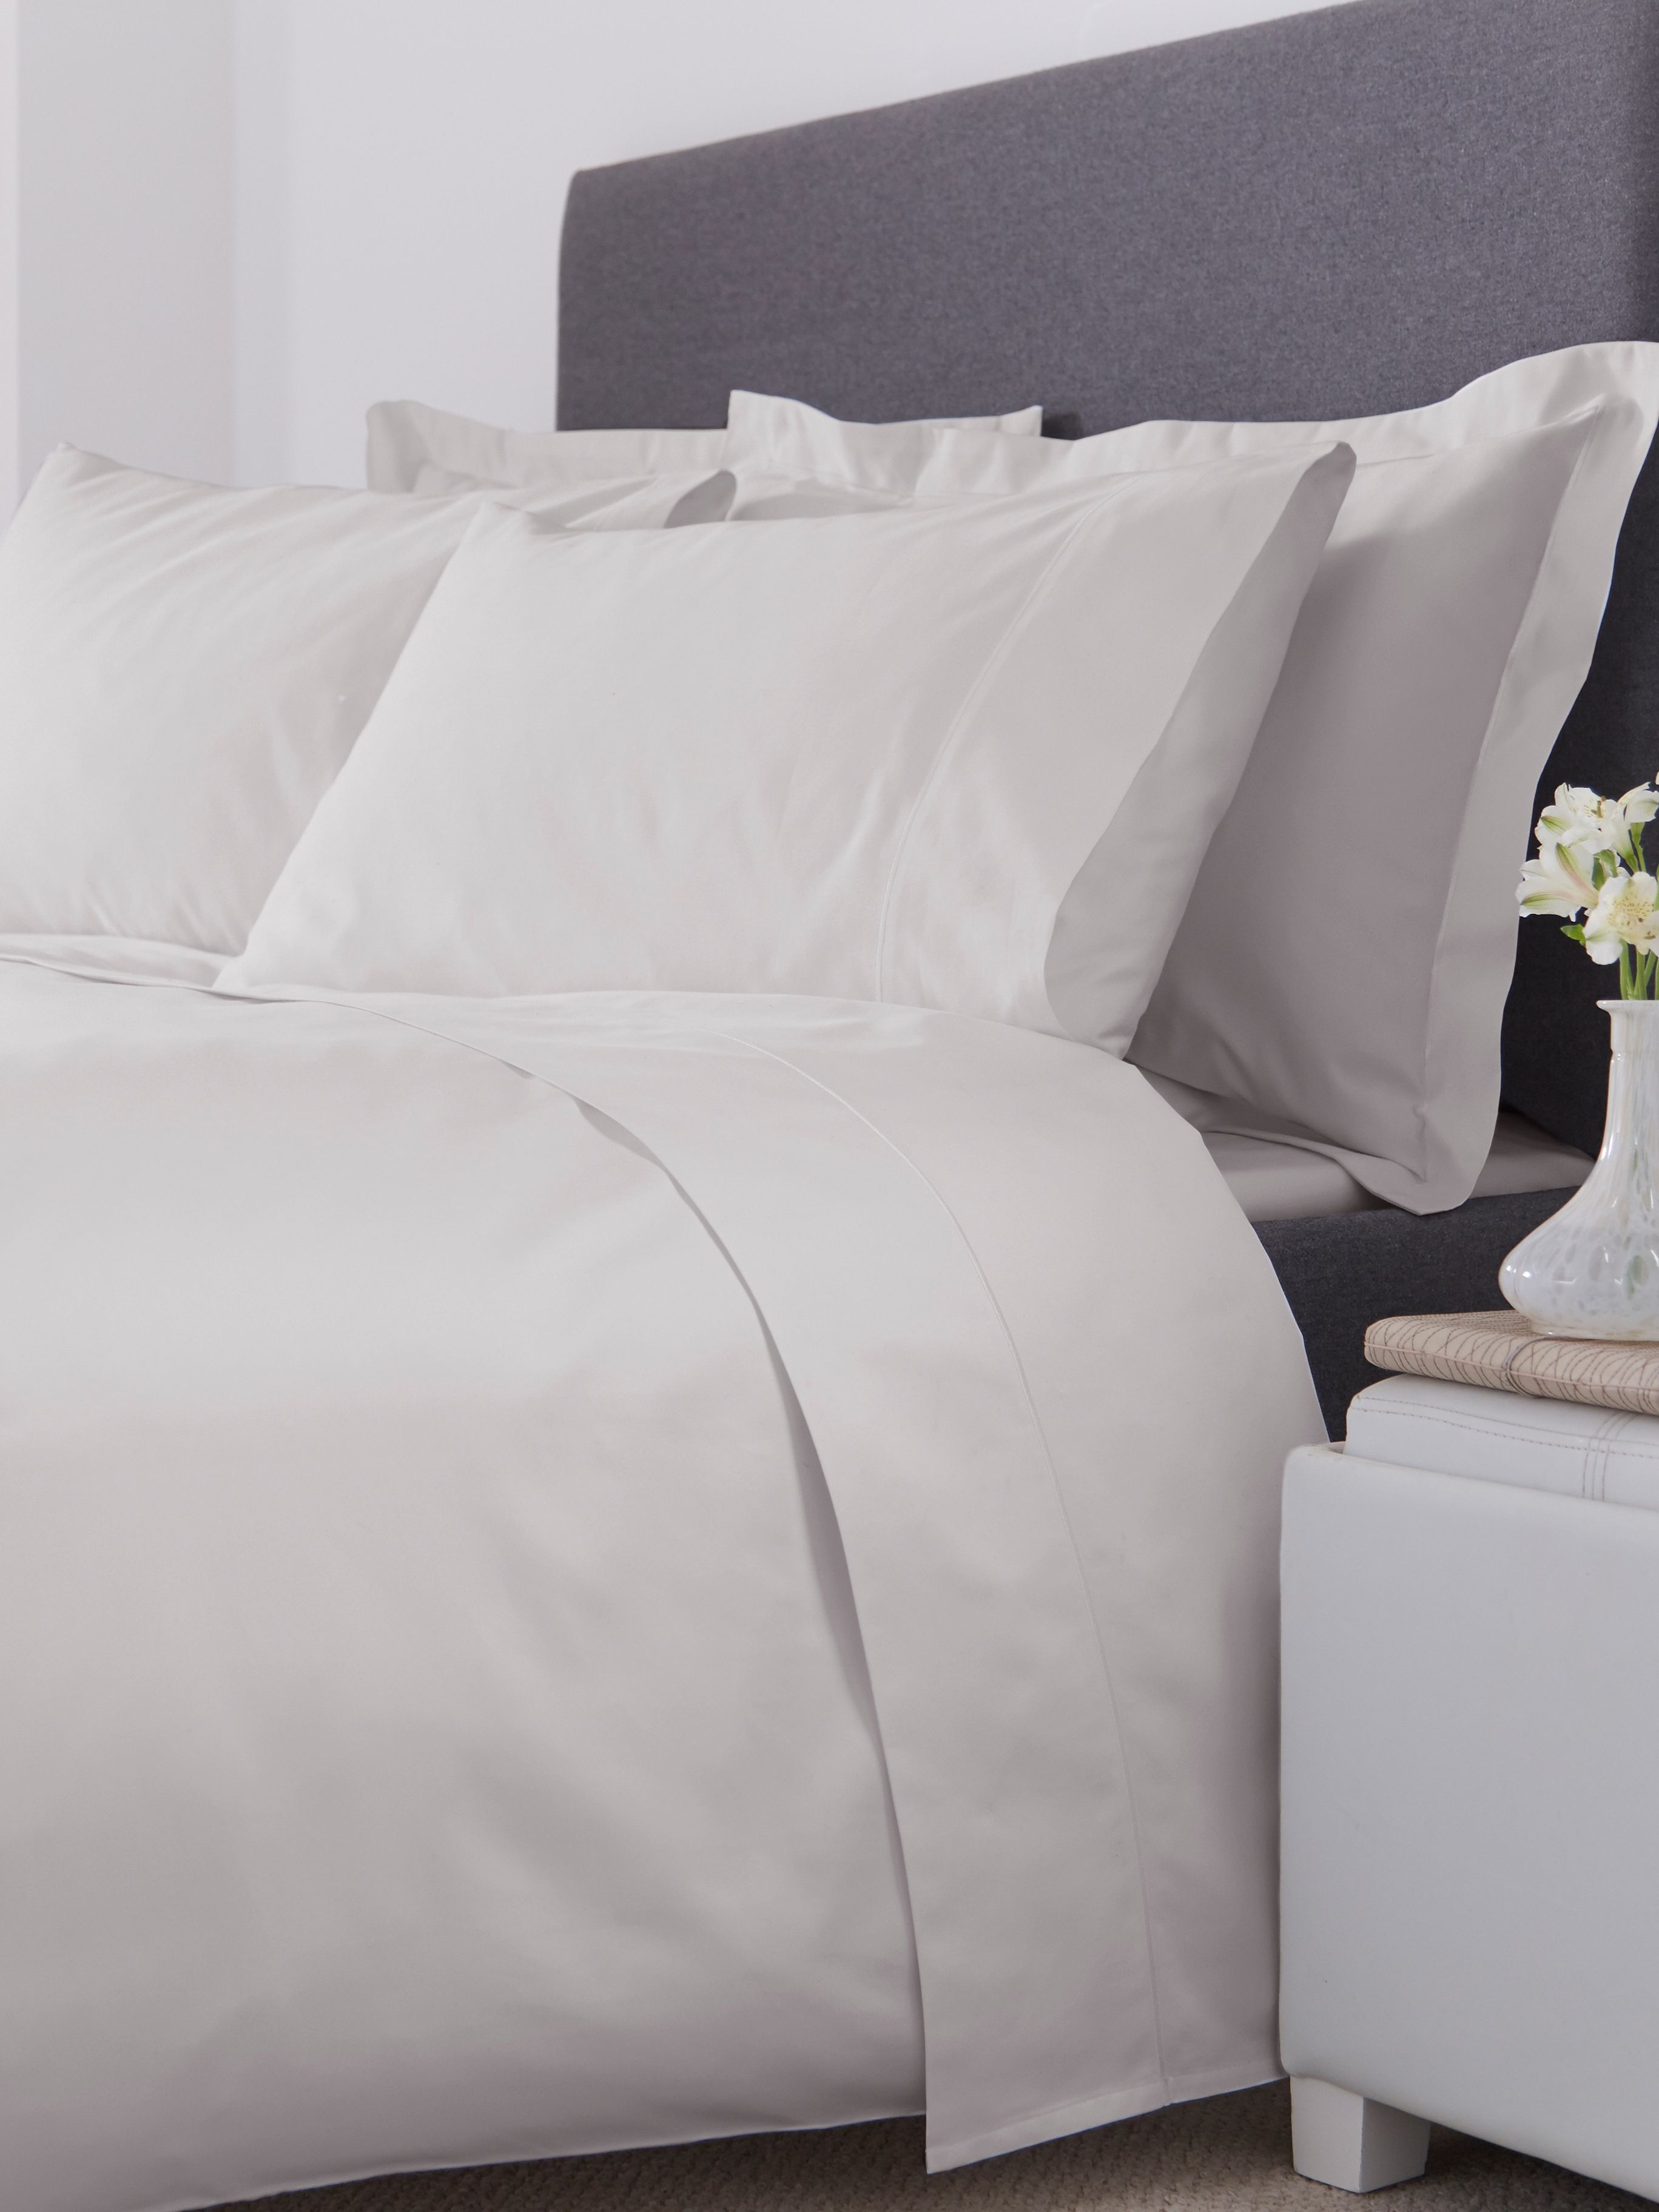 Incroyable 800 Thread Count Housewife Pillowcases Moonbeam